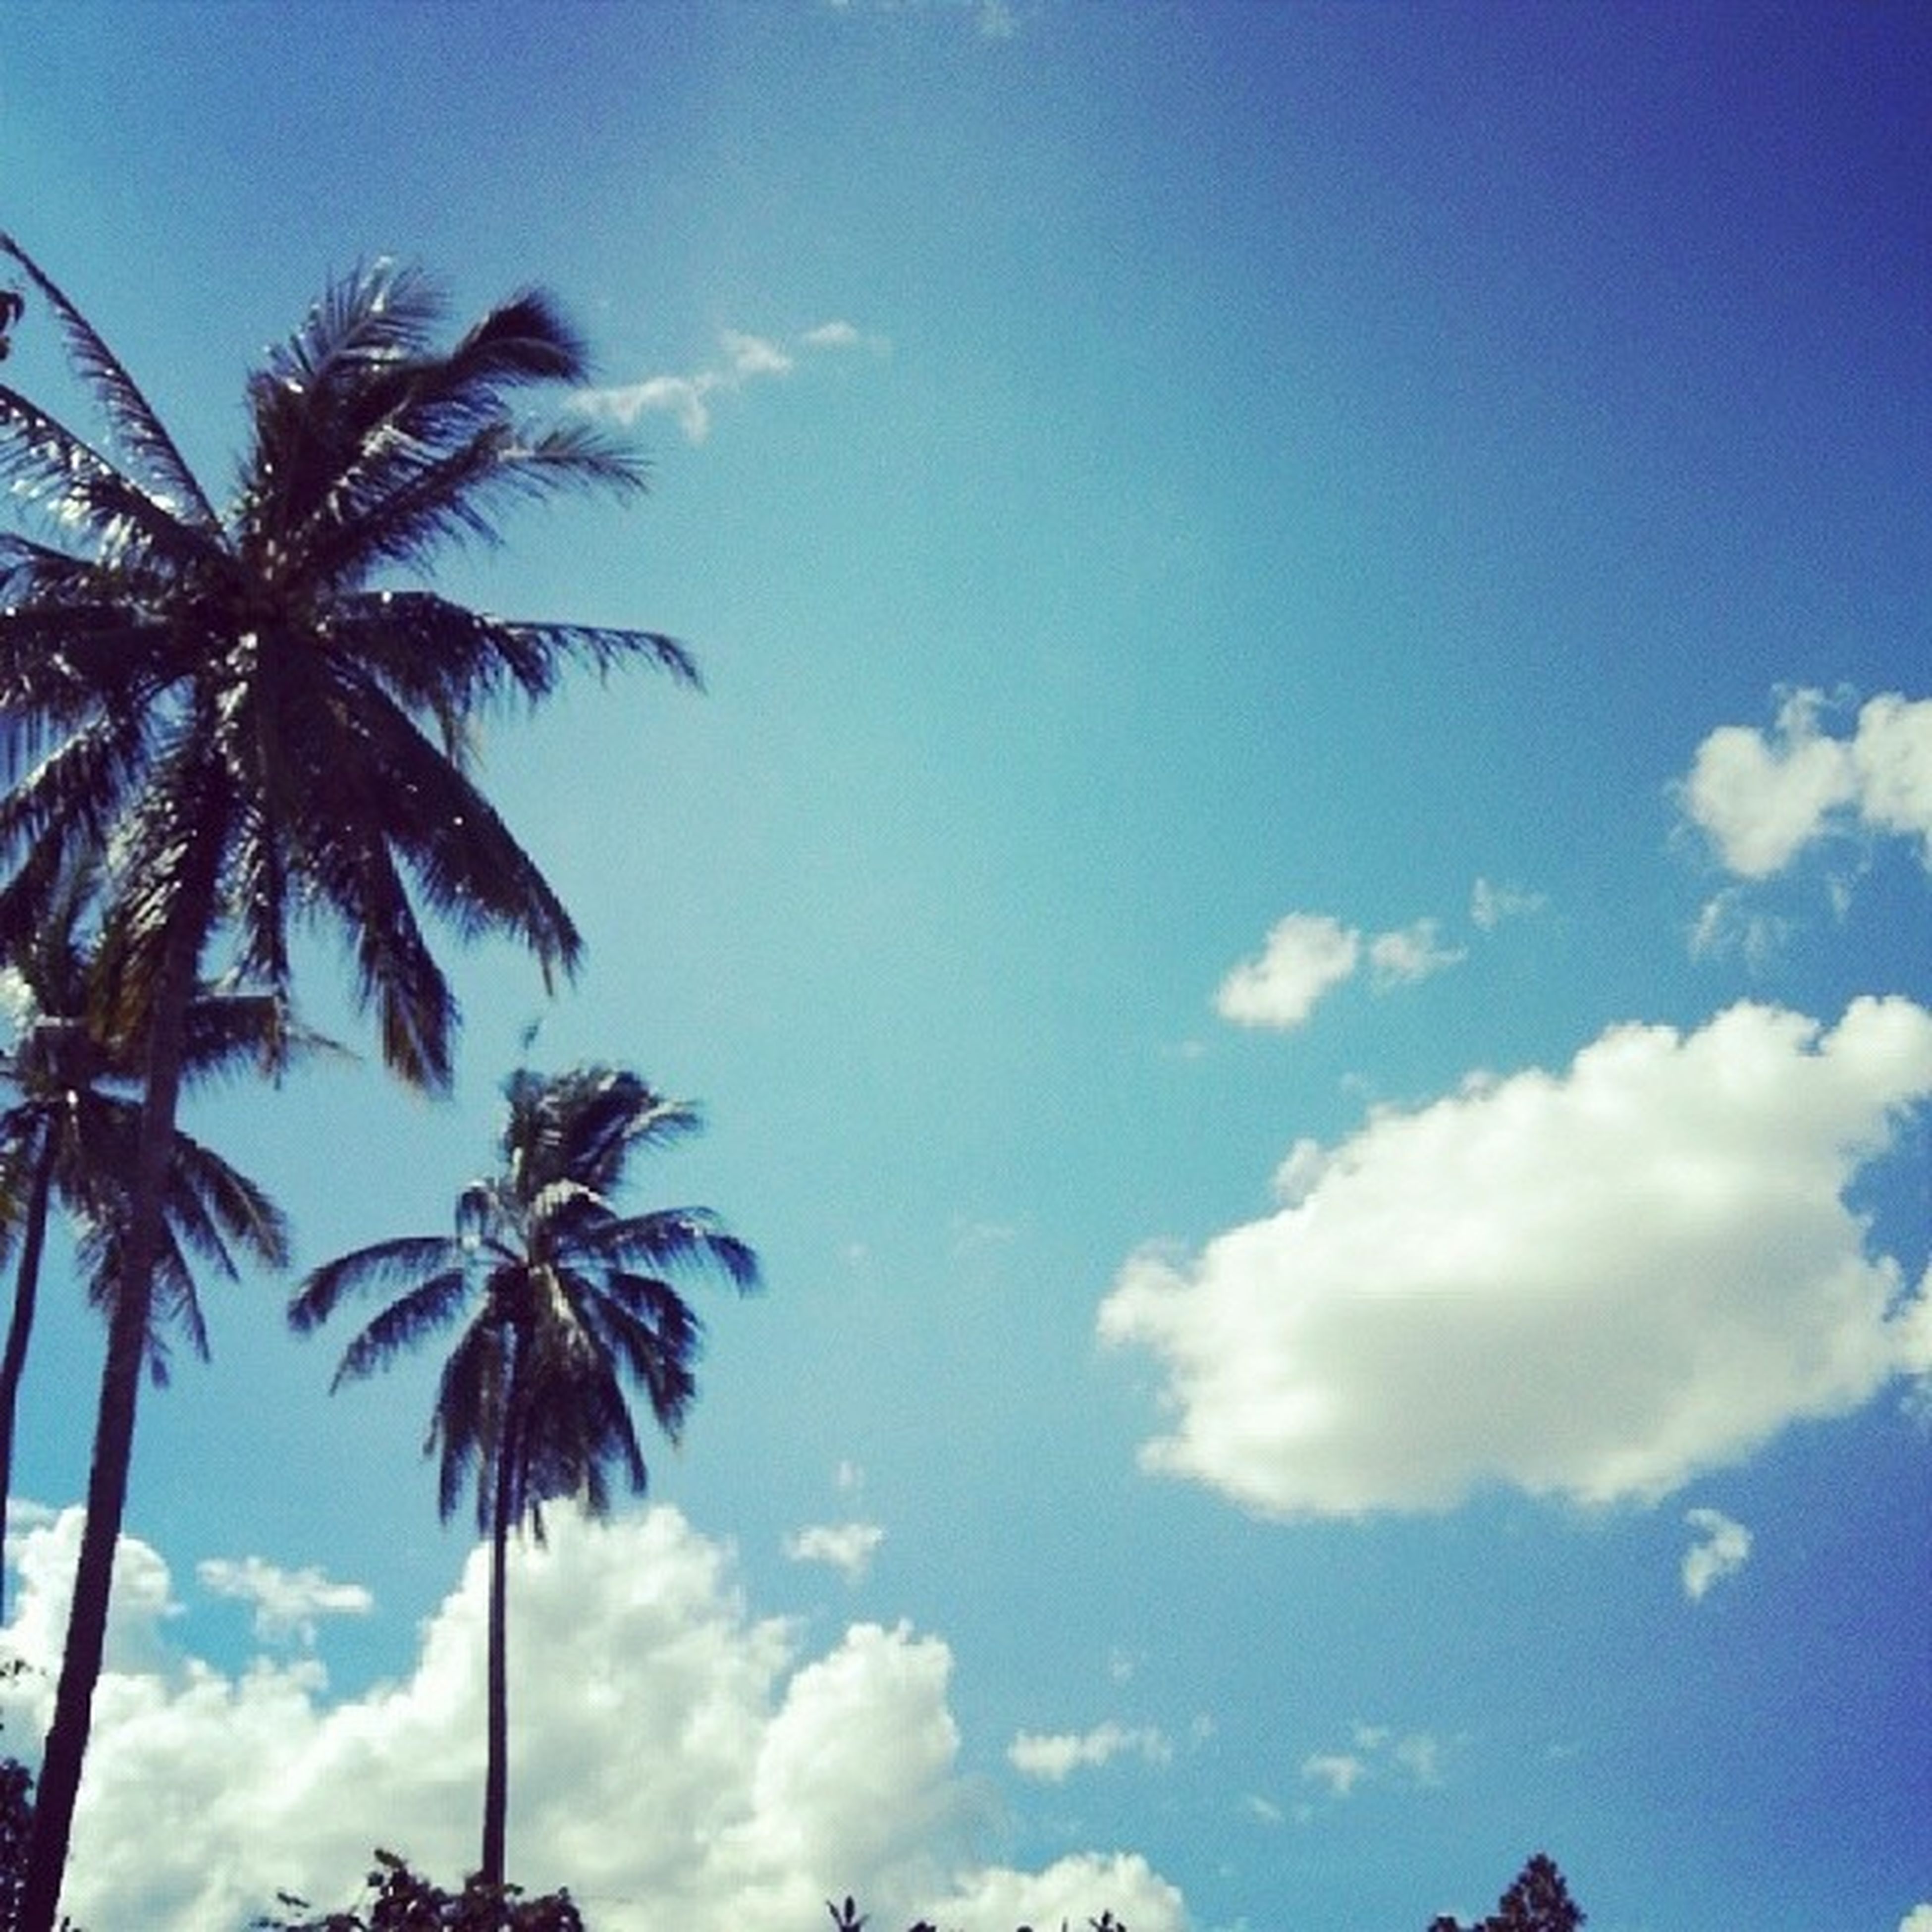 low angle view, palm tree, sky, tree, blue, silhouette, cloud - sky, beauty in nature, cloud, nature, growth, tranquility, scenics, tree trunk, outdoors, cloudy, no people, coconut palm tree, tranquil scene, day